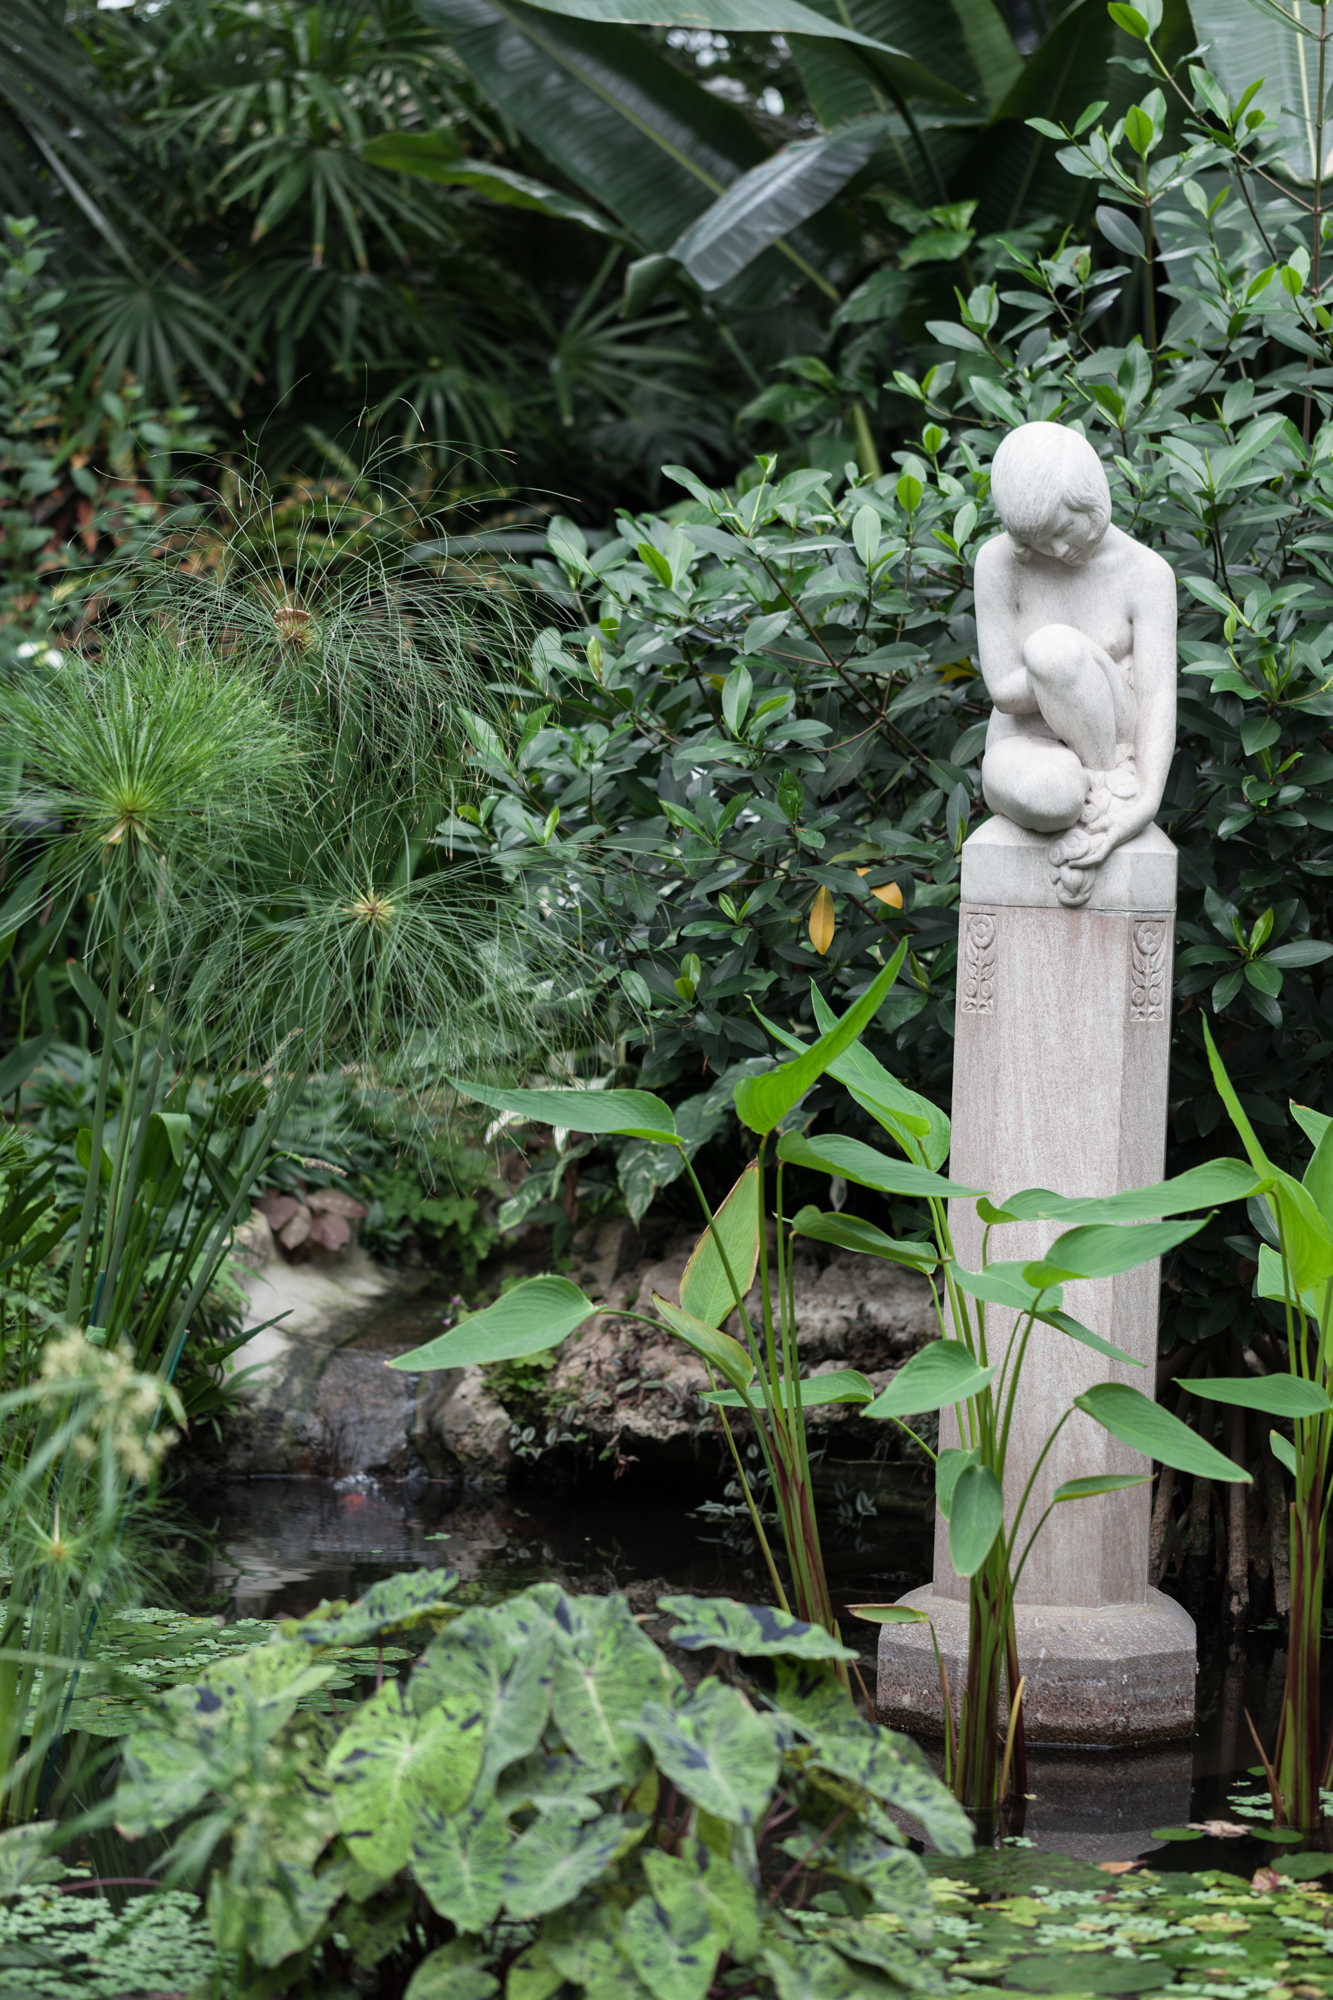 Some taro leaves and papyrus growing up out of the pond at the Lincoln Park Conservatory. I love how contemplative the statue is, perched above the water.